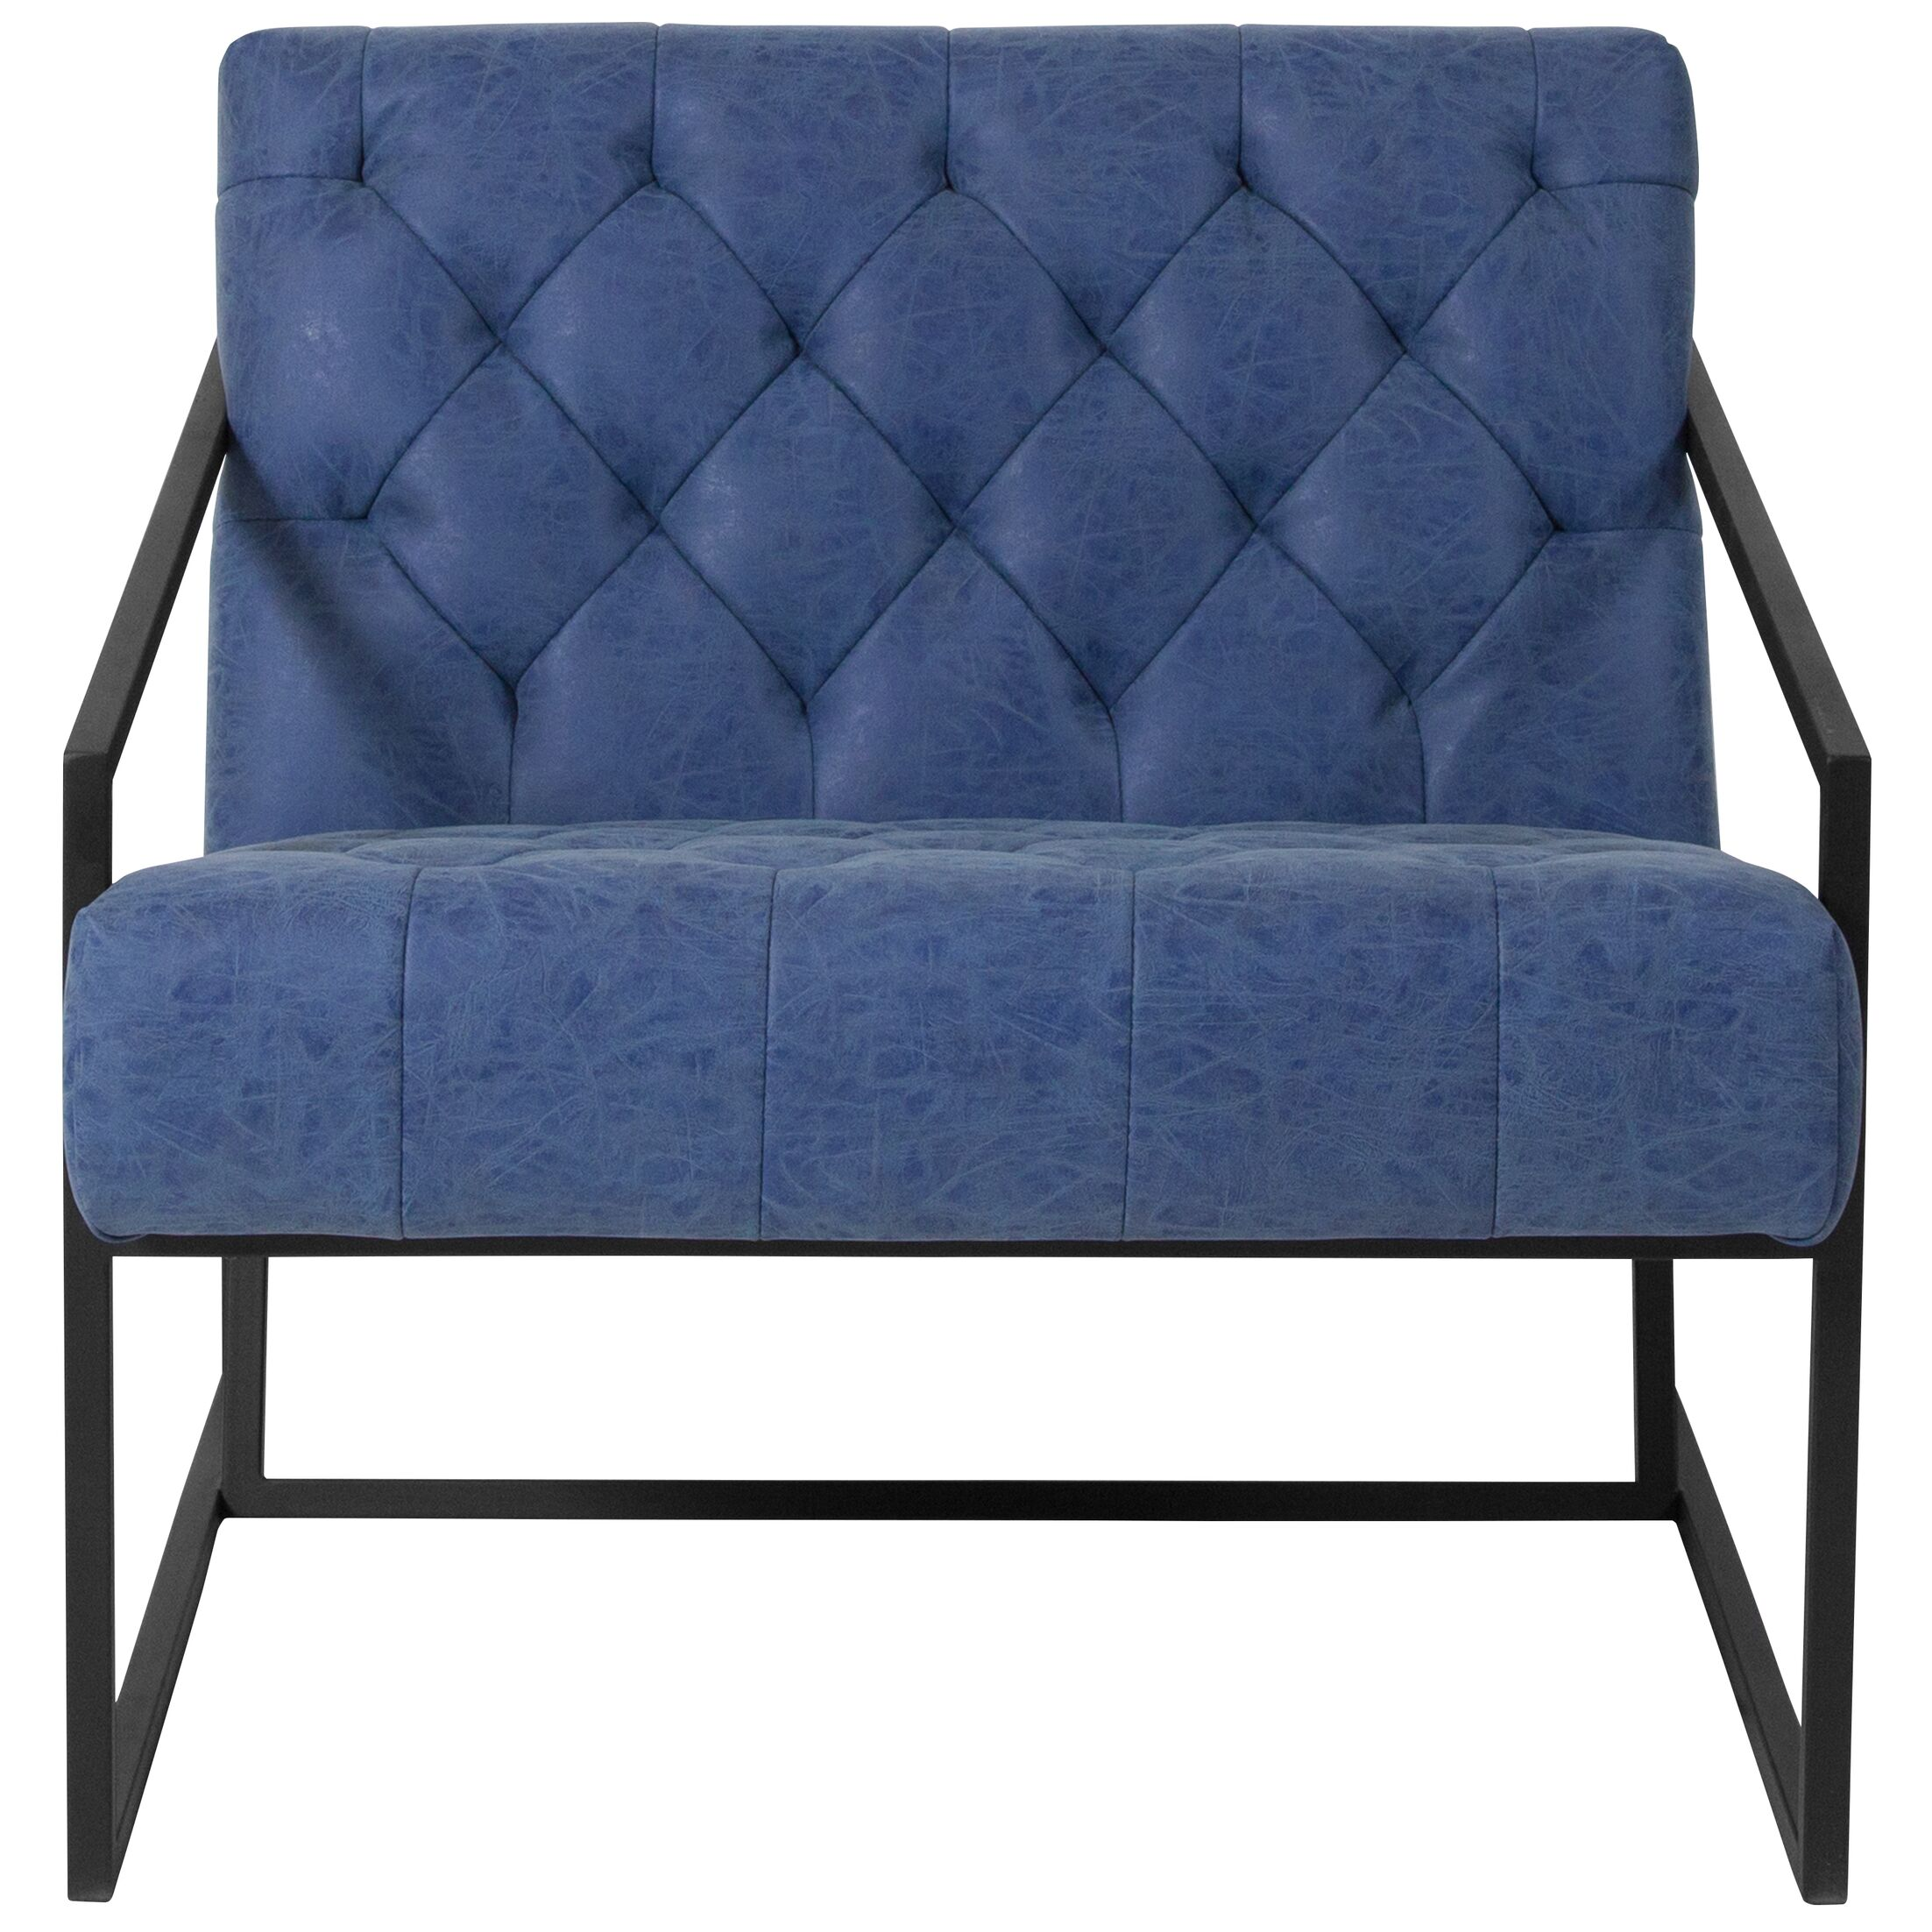 Janney Leather Tufted Lounge Chair Seat Color: Retro Blue